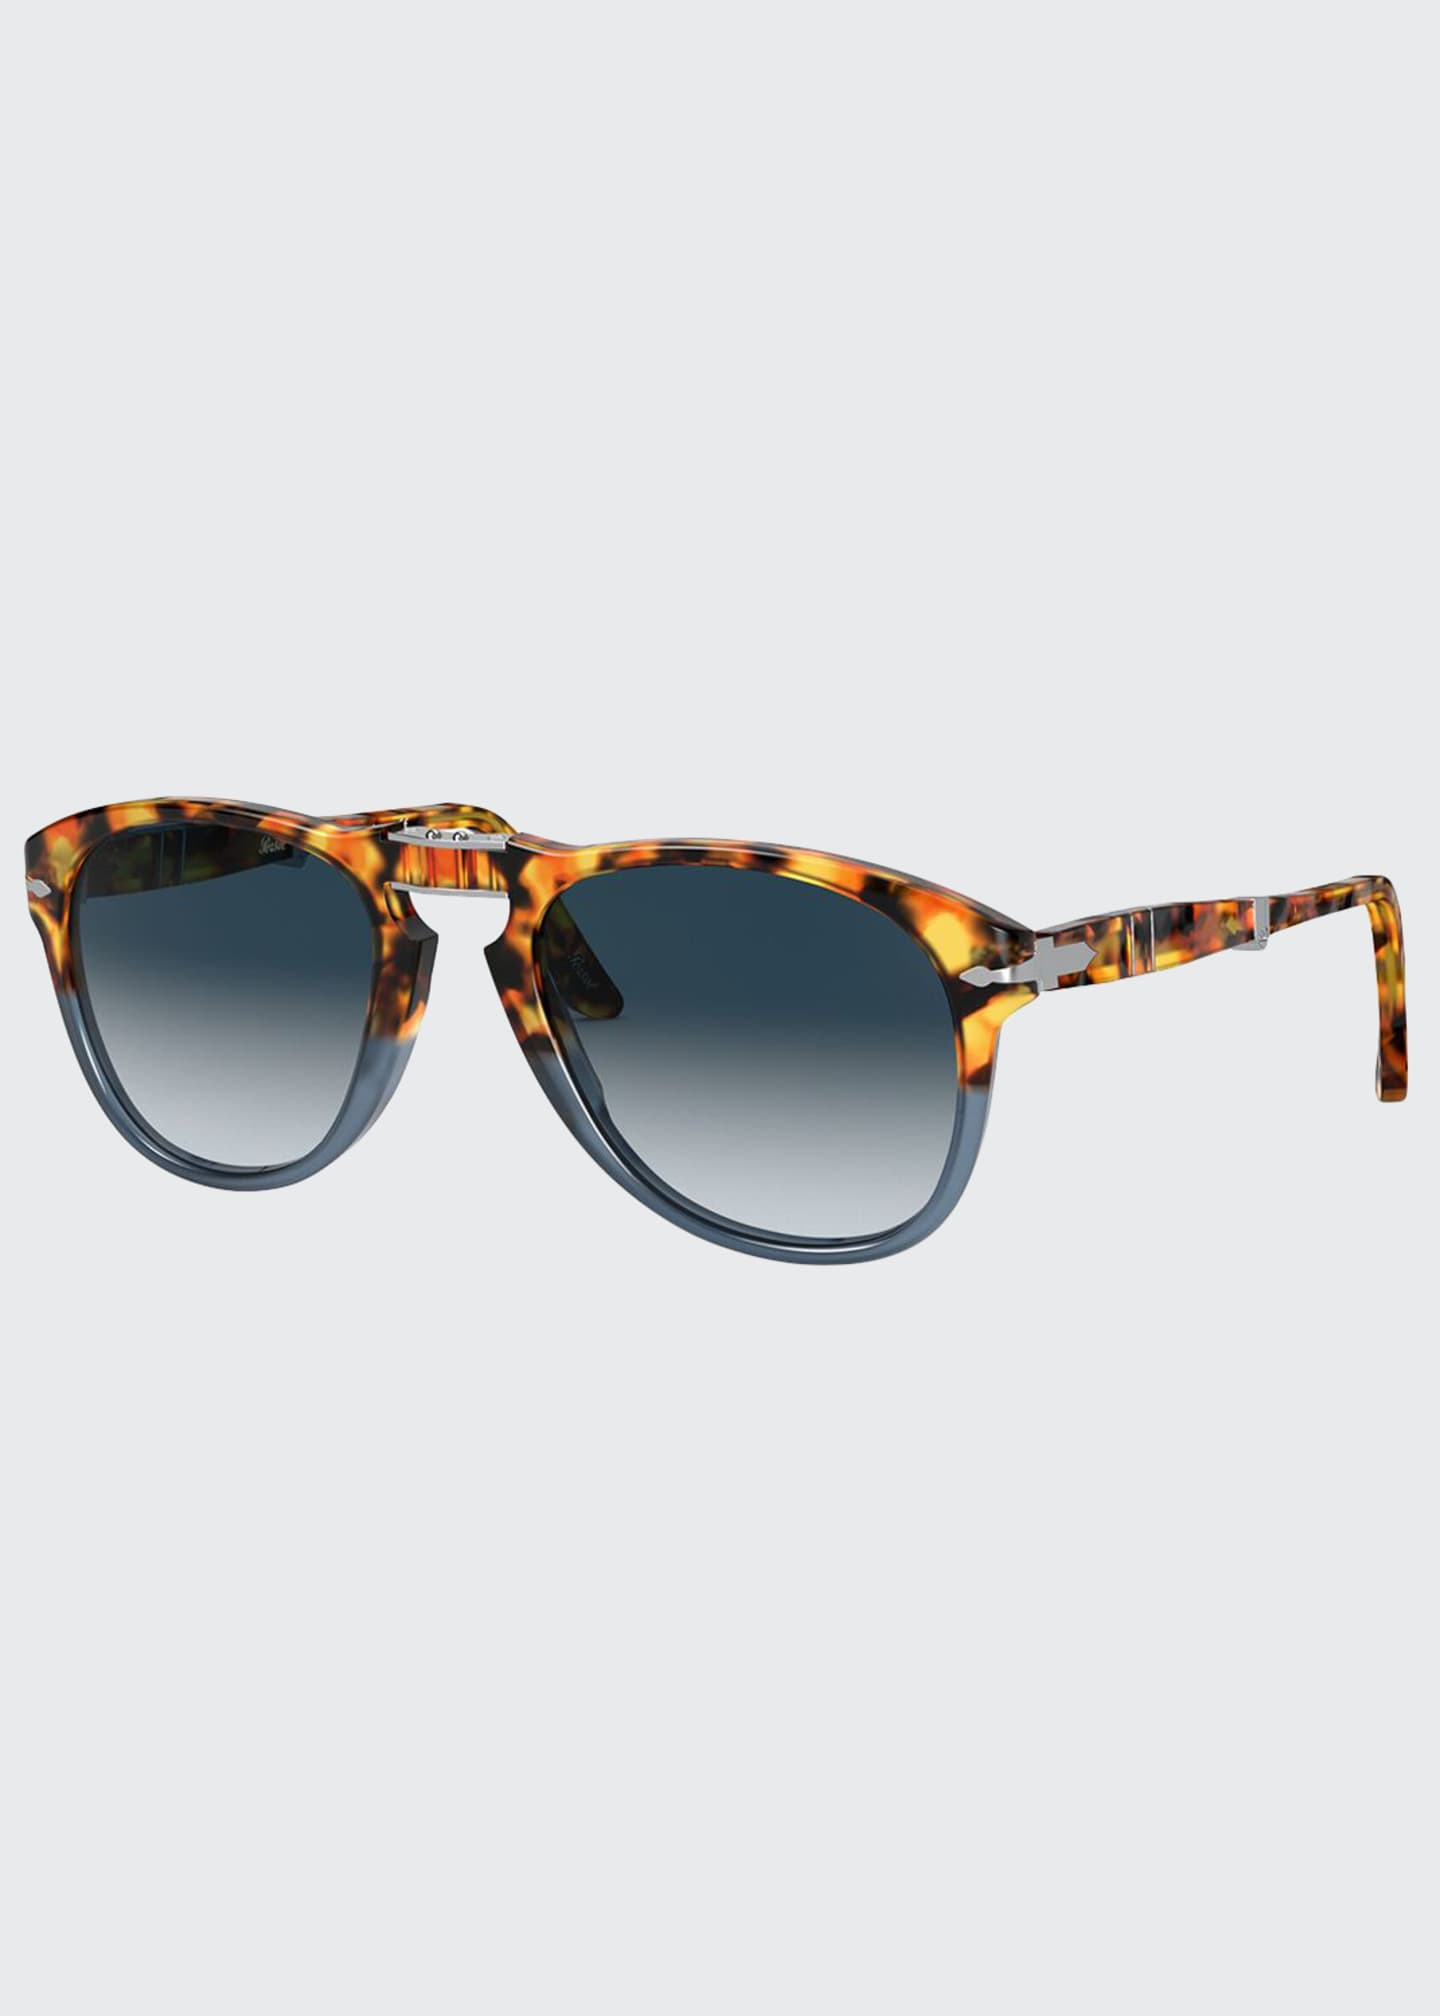 Image 1 of 4: Men's Gradient Tortoiseshell Acetate Folding Sunglasses